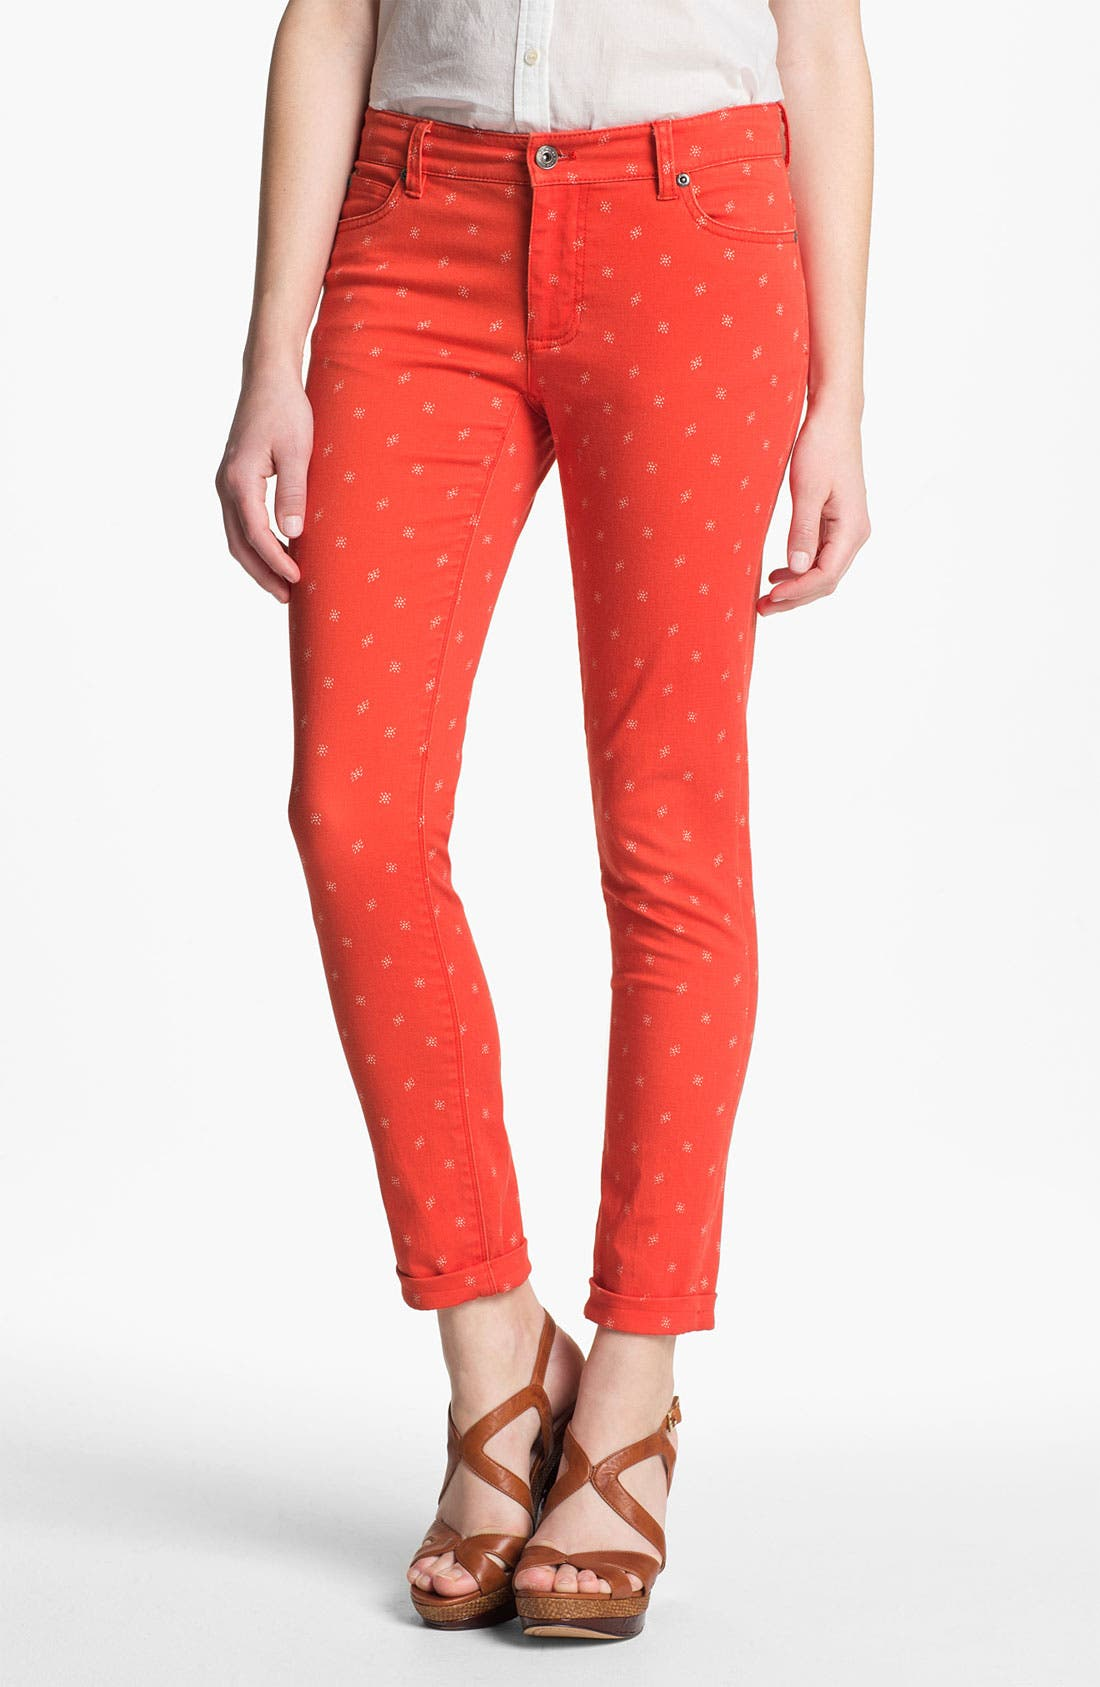 Alternate Image 1 Selected - Two by Vince Camuto 'Shorty' Star Print Jeans (Fiery Red)